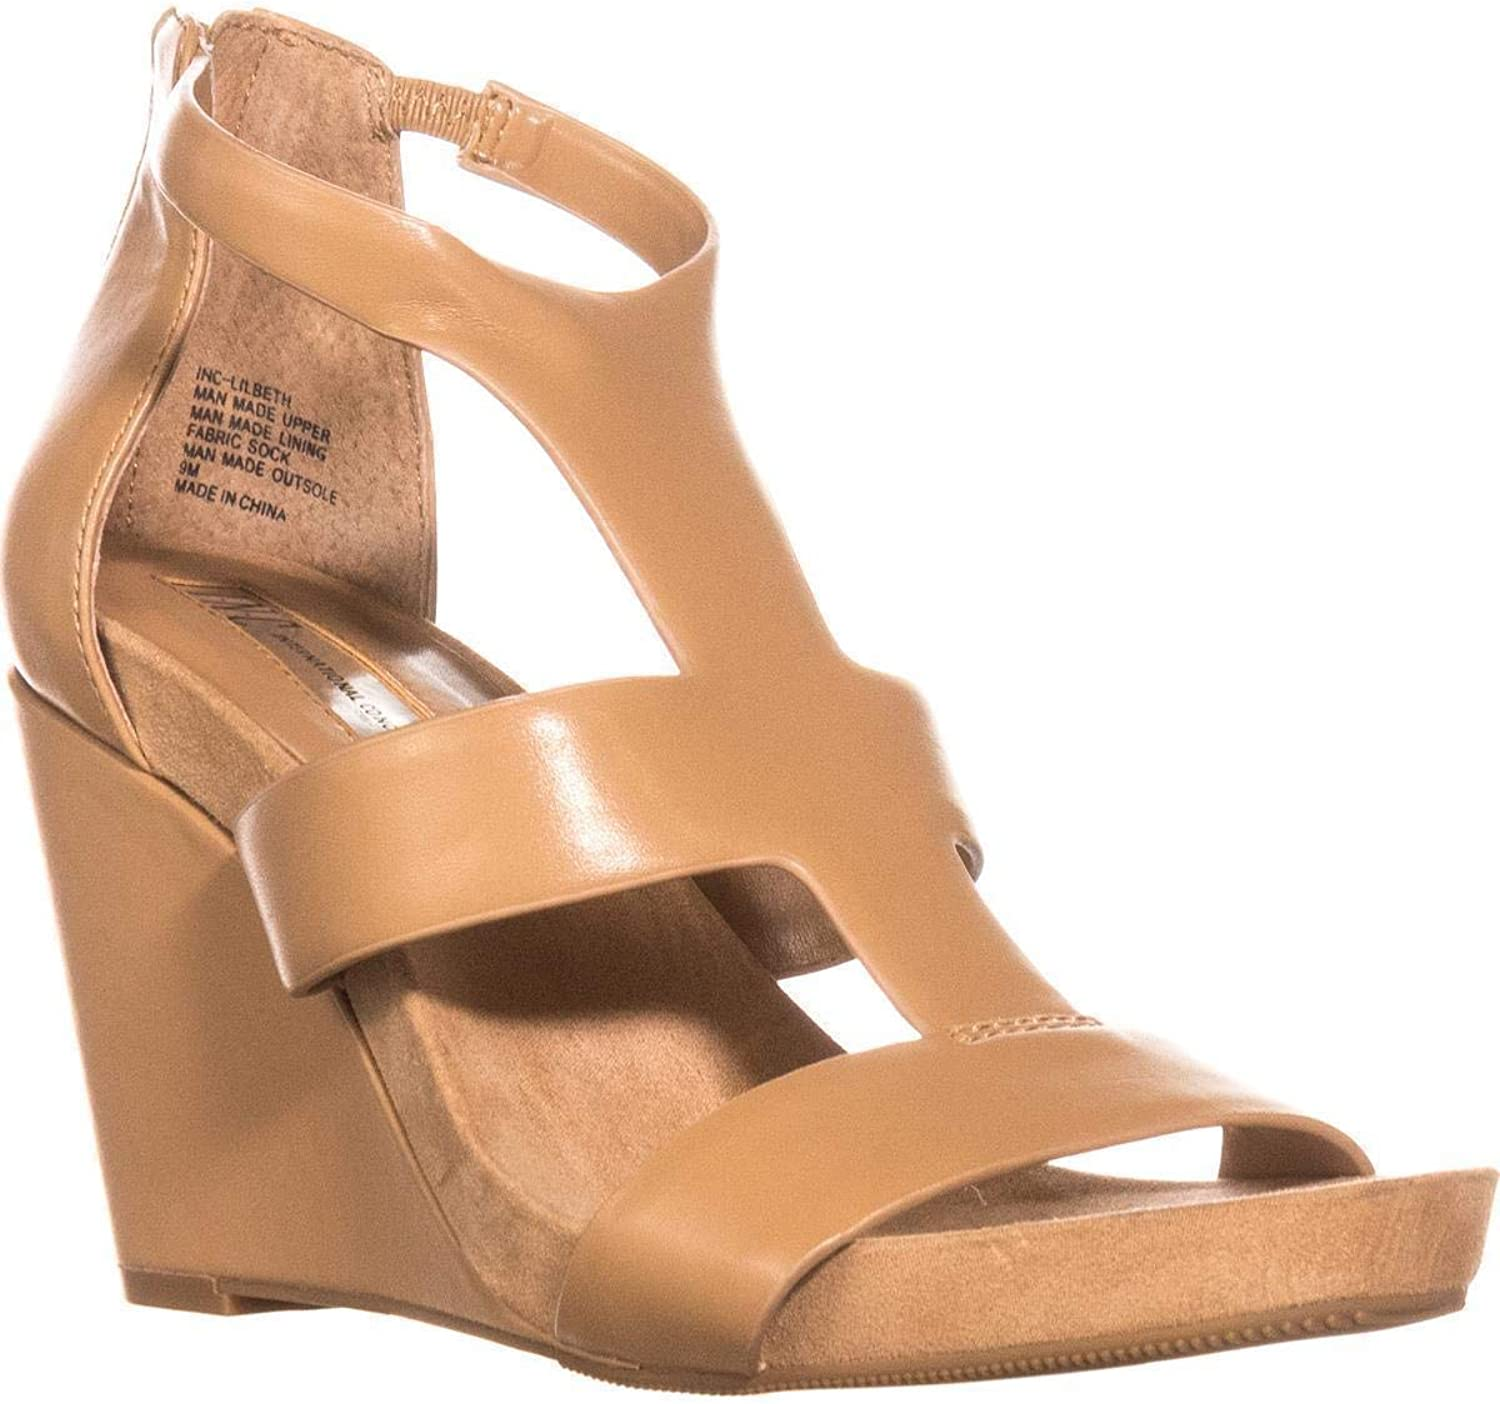 INC International Concepts Womens Lilbeth Open Toe Casual, Classic Tan, Size 9.5